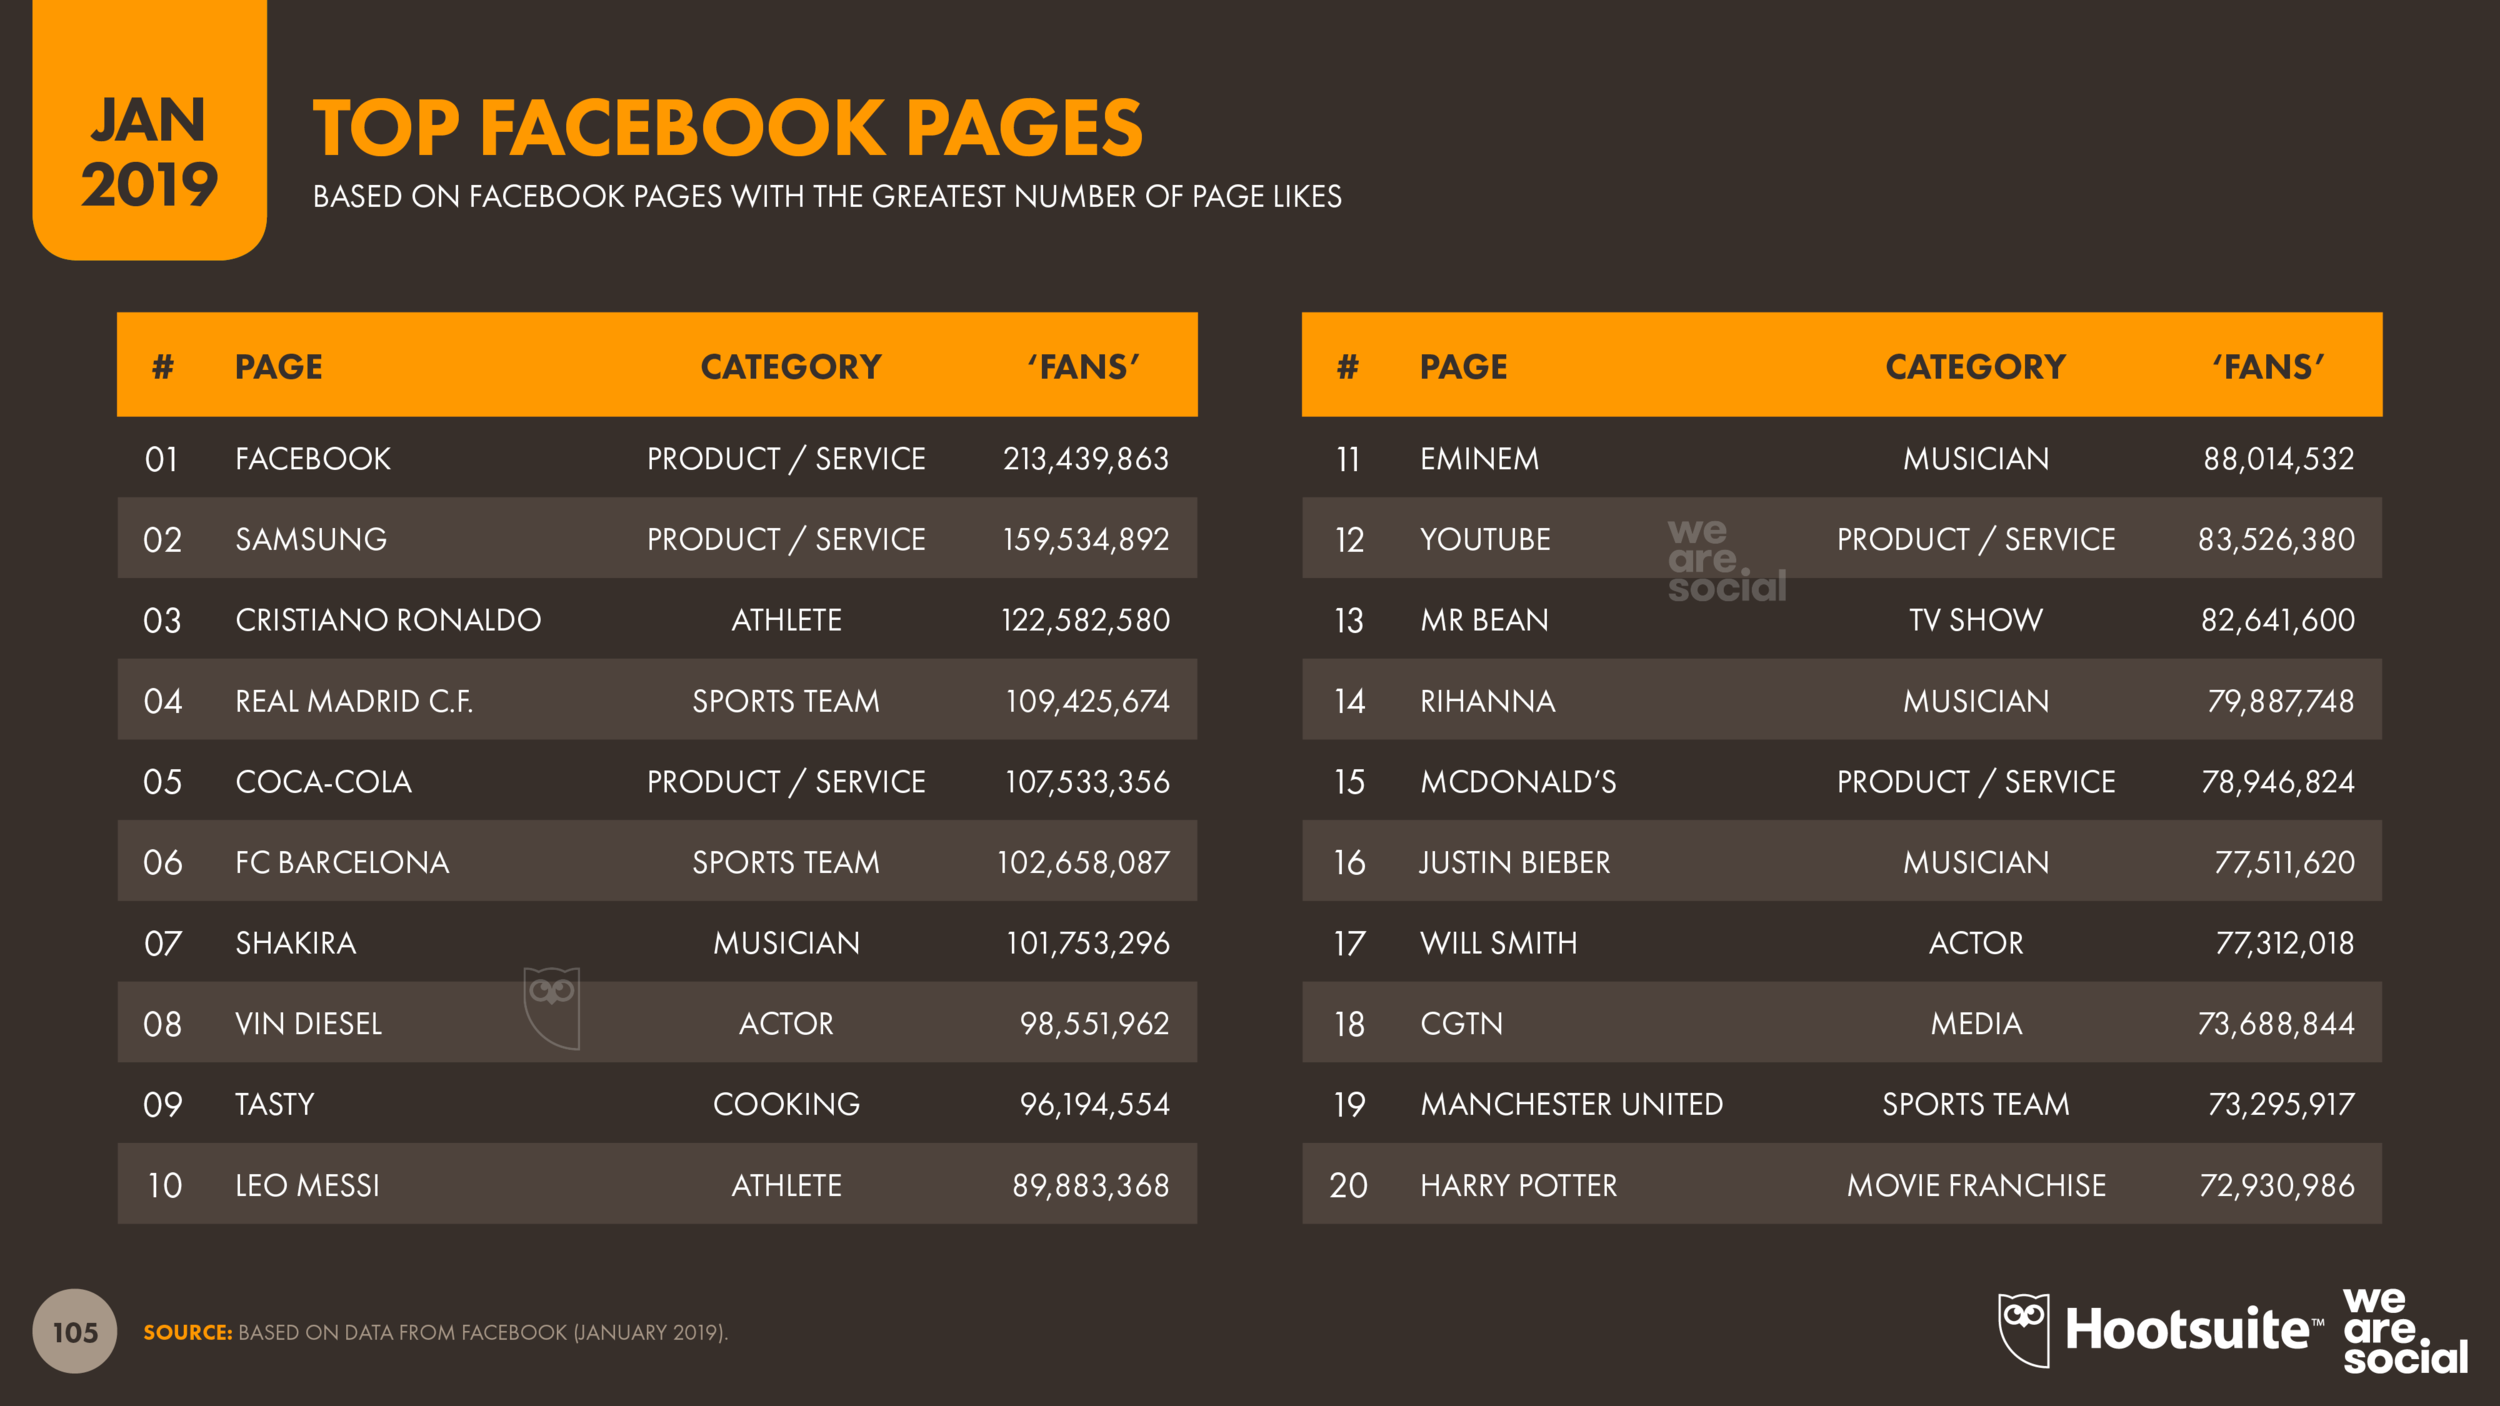 Top Facebook Pages January 2019 DataReportal